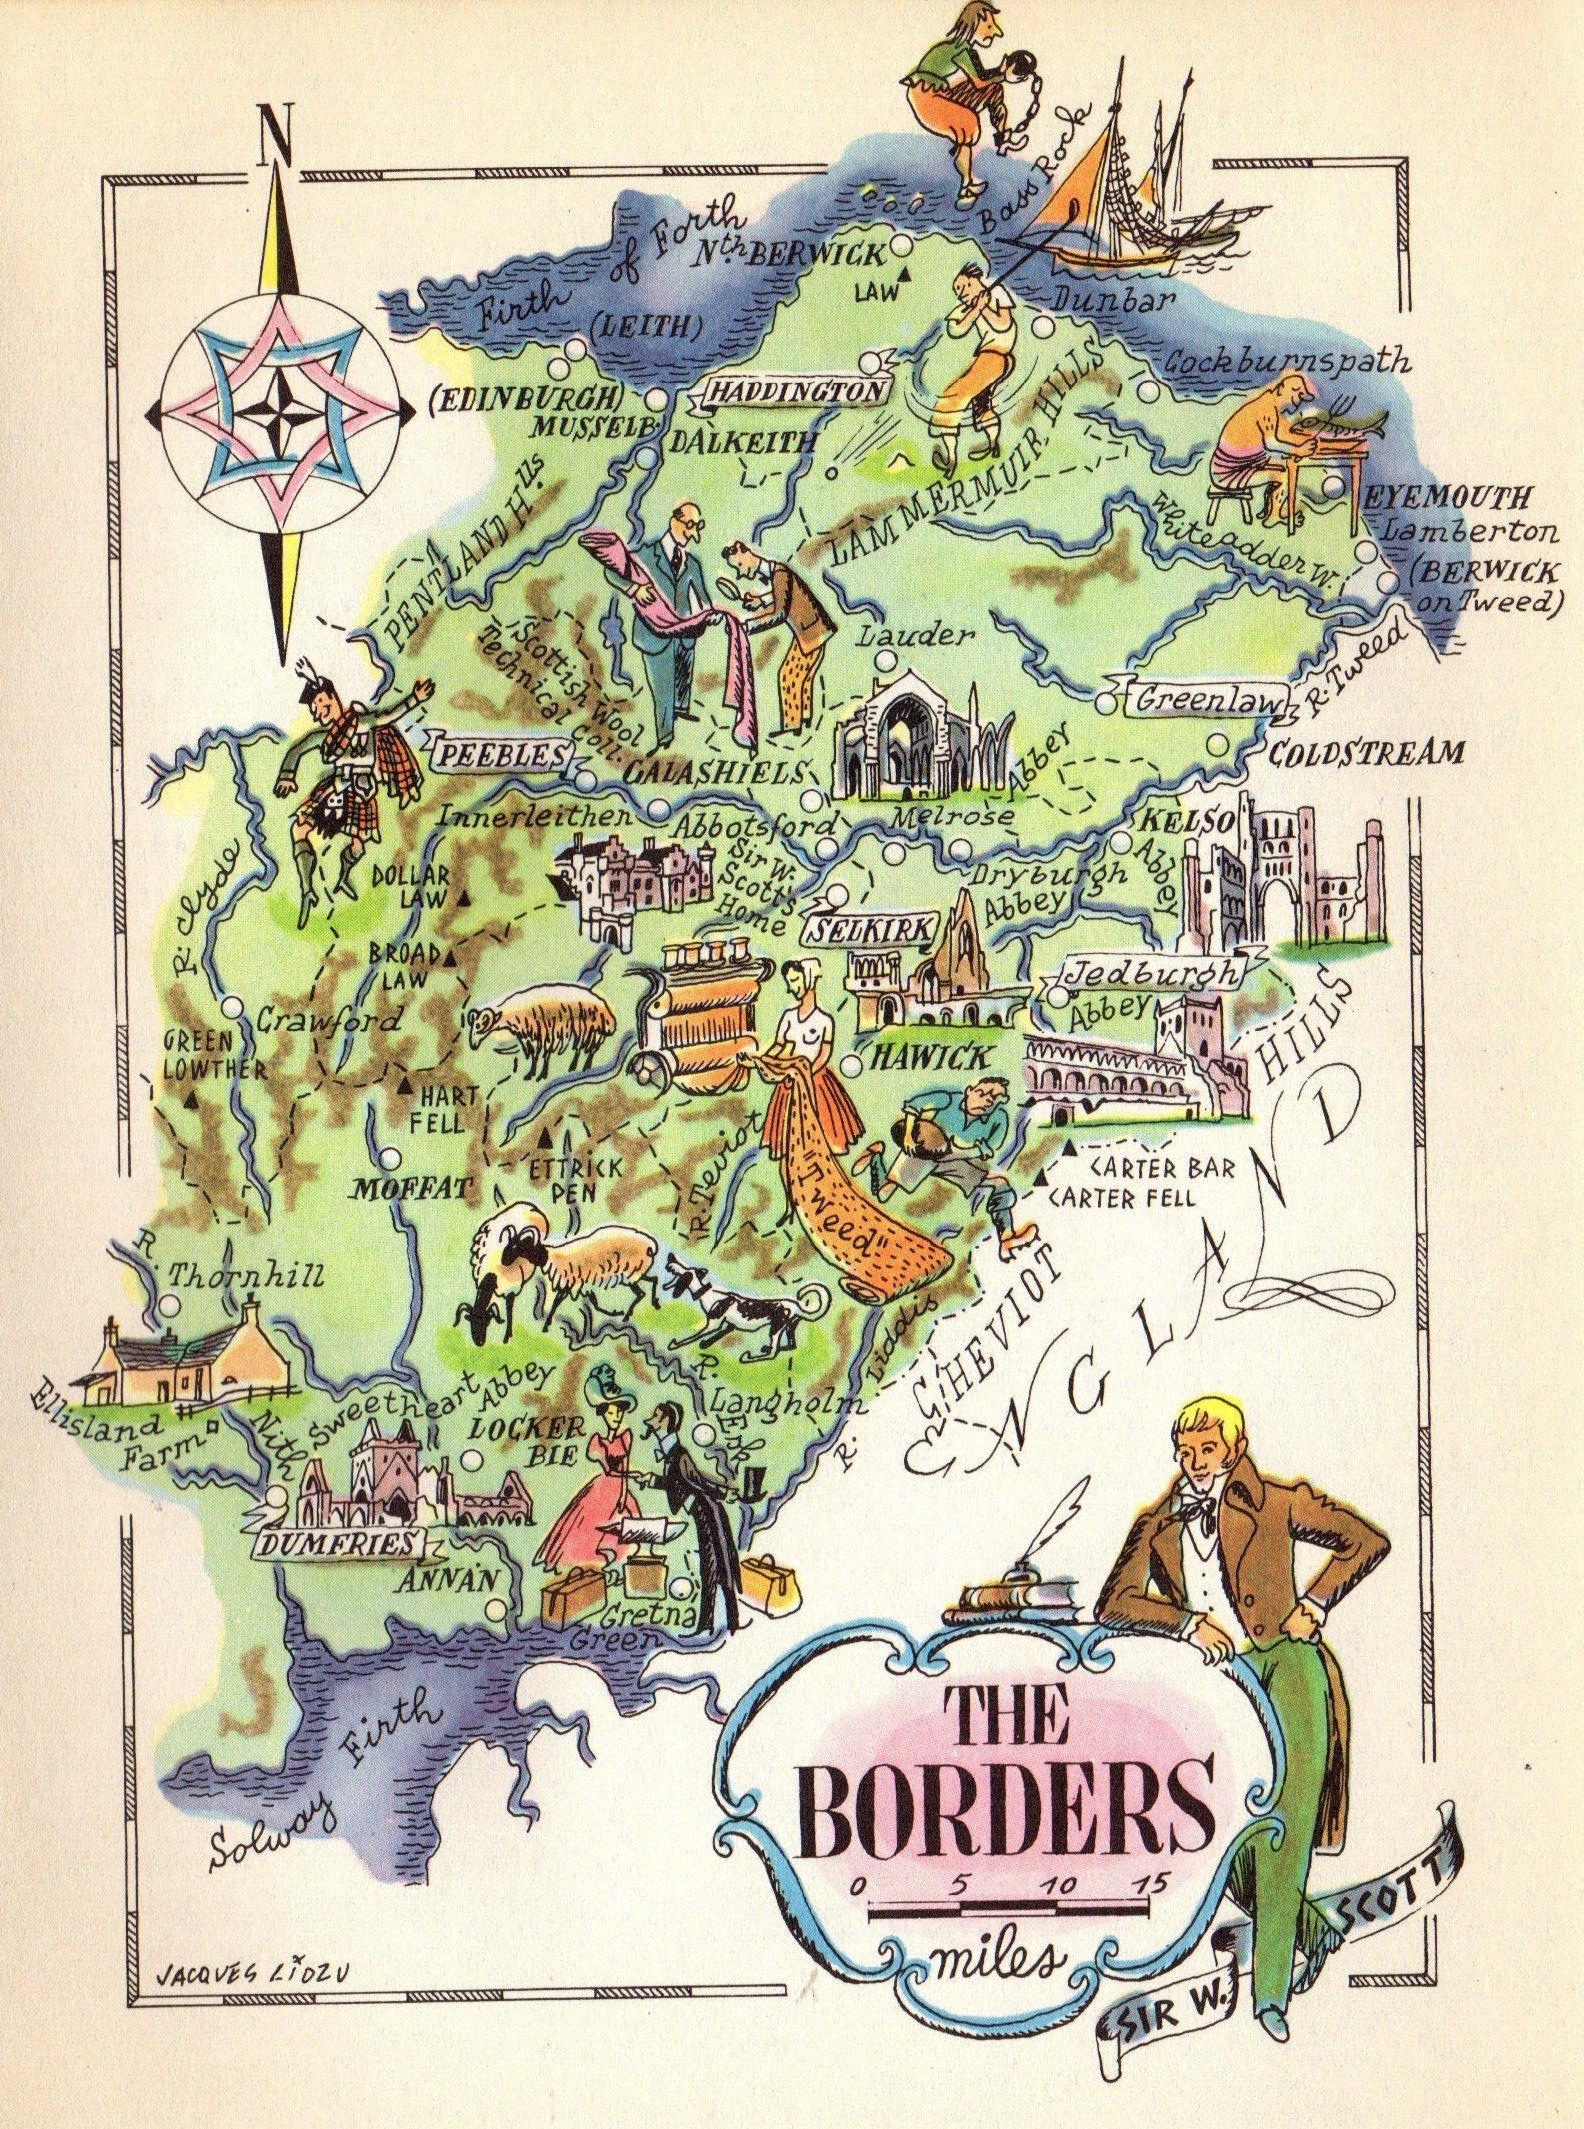 1949 Vintage England Picture Map The Borders Cartoon Map Gallery Wall Art Gift For Traveler Birthday Wedding 8117 By Pl Cartoon Map Pictorial Maps Map Wall Art